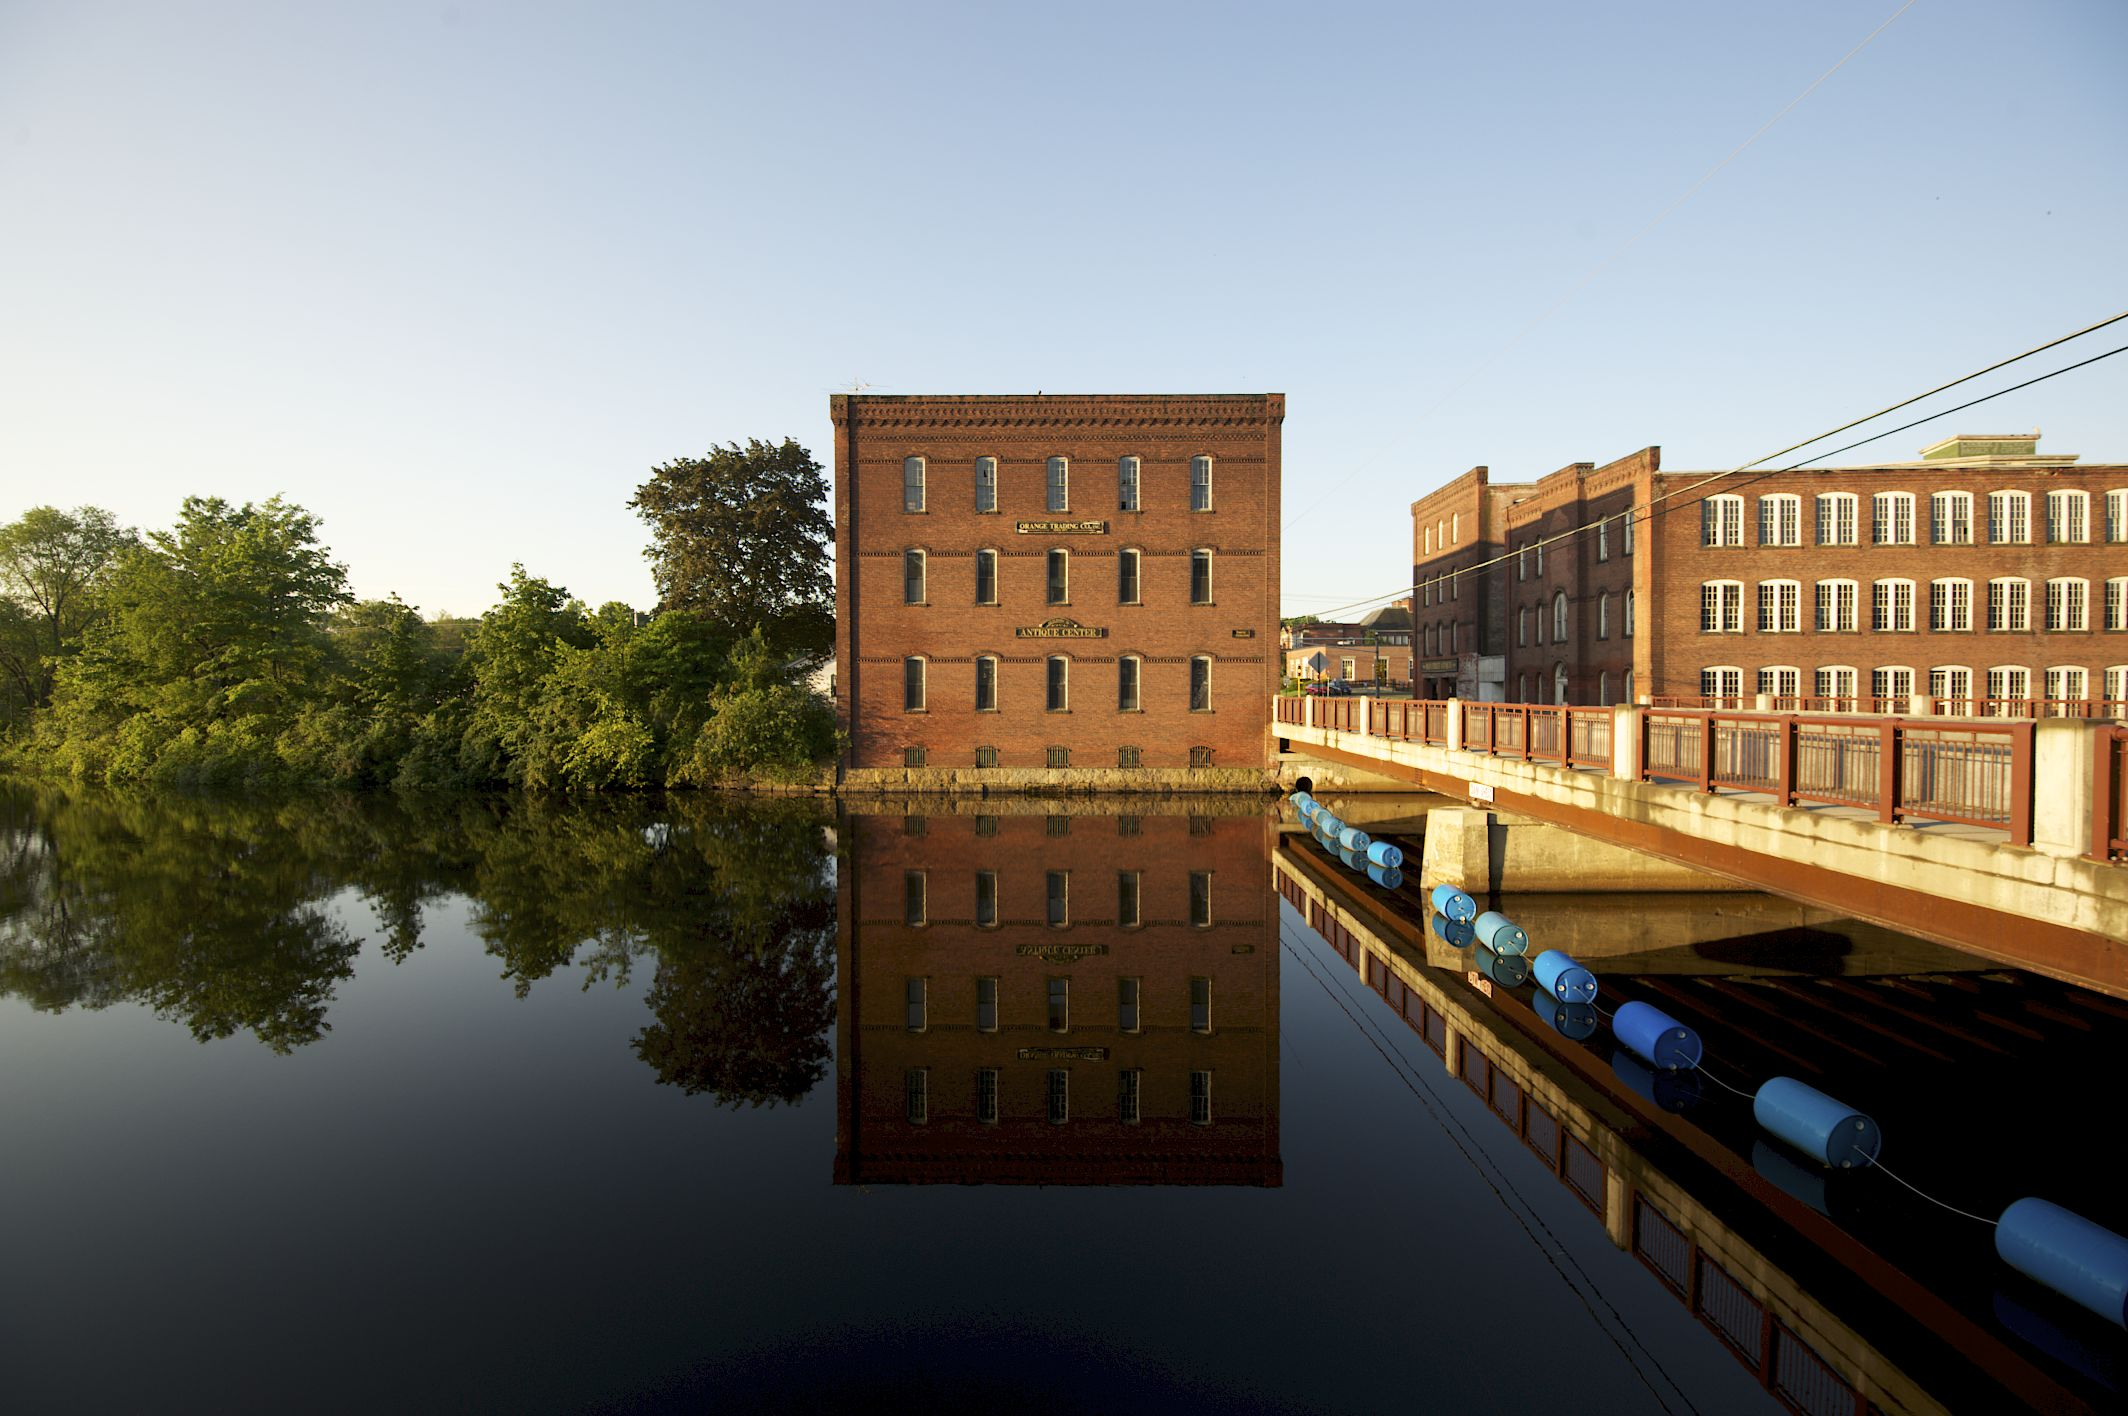 Orange MA Millers River Andrew Wertz. Building on the water with a reflection